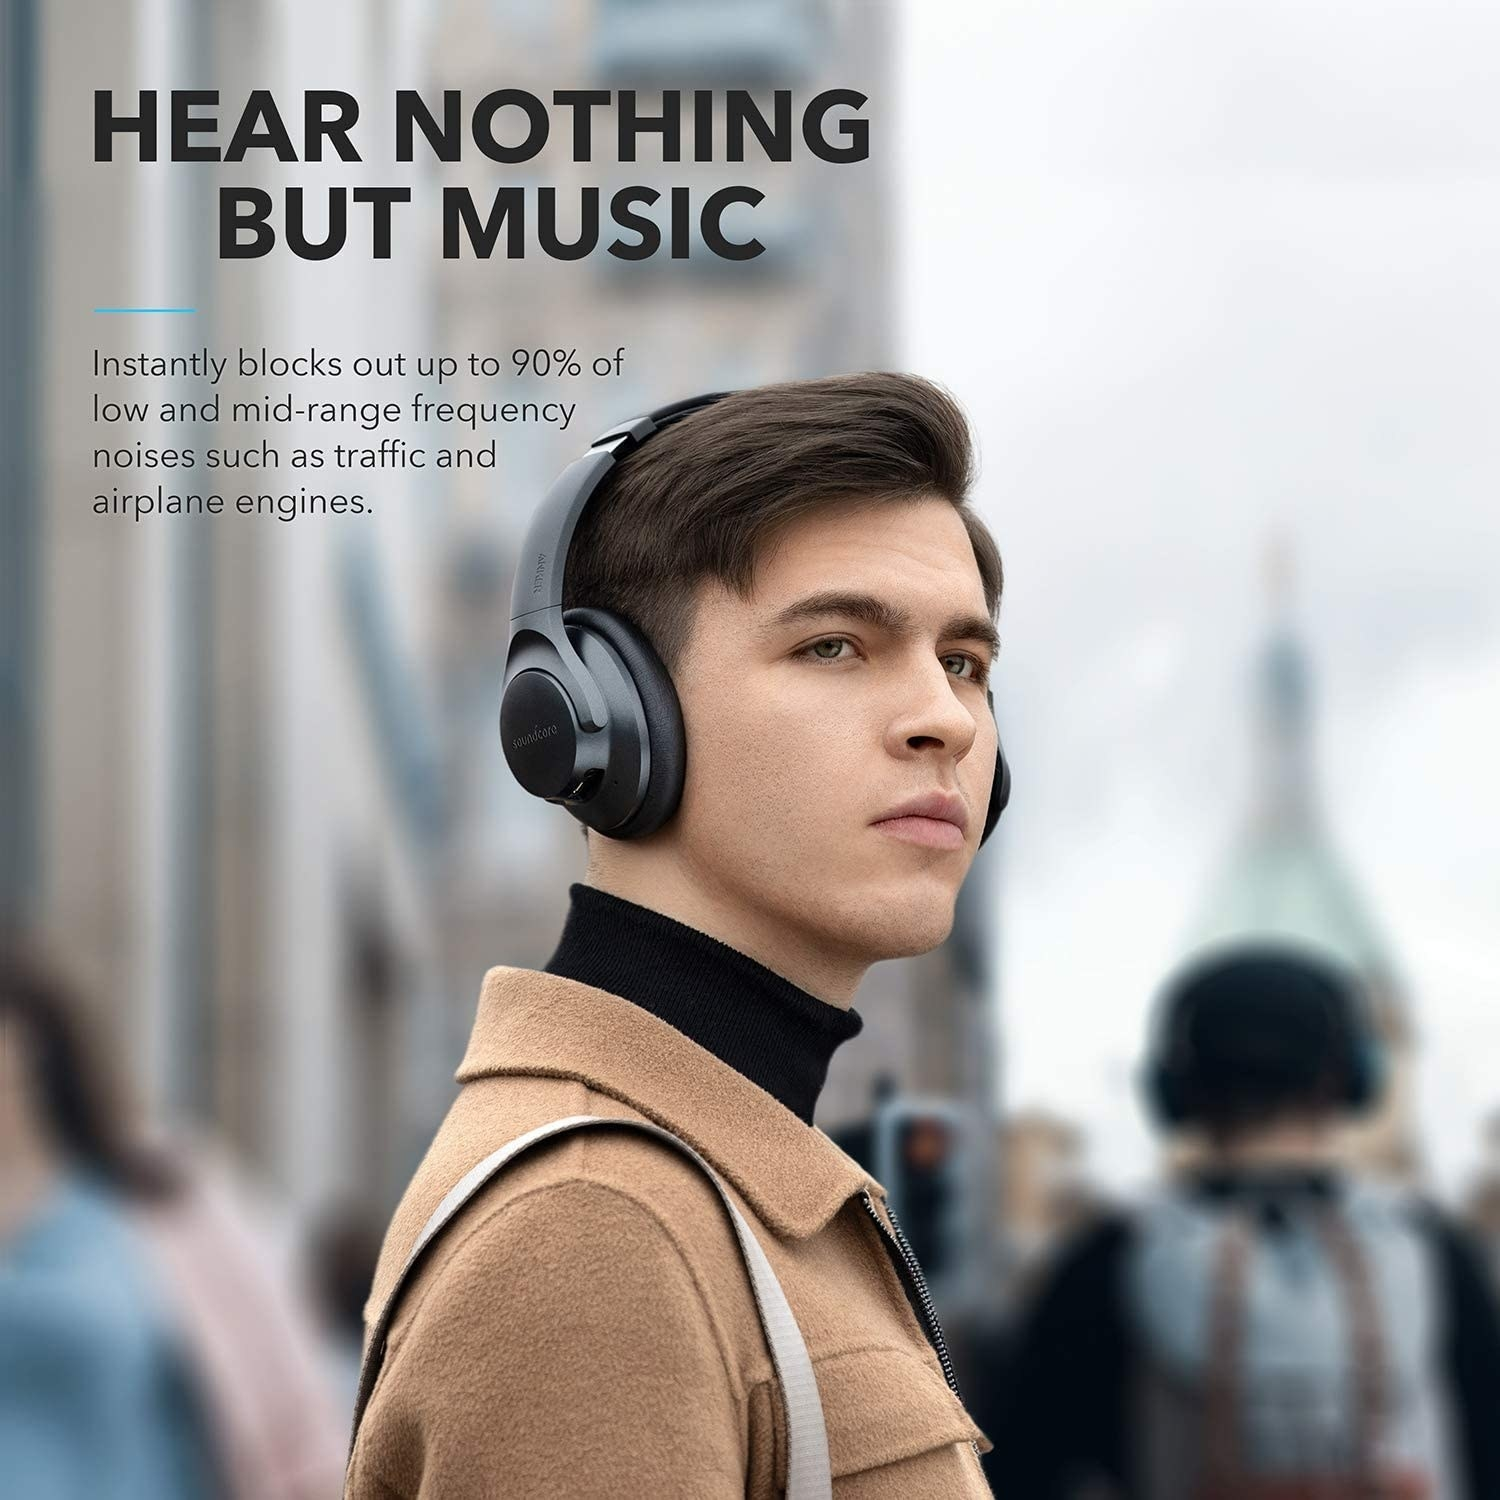 A person wearing the over-ear headphones